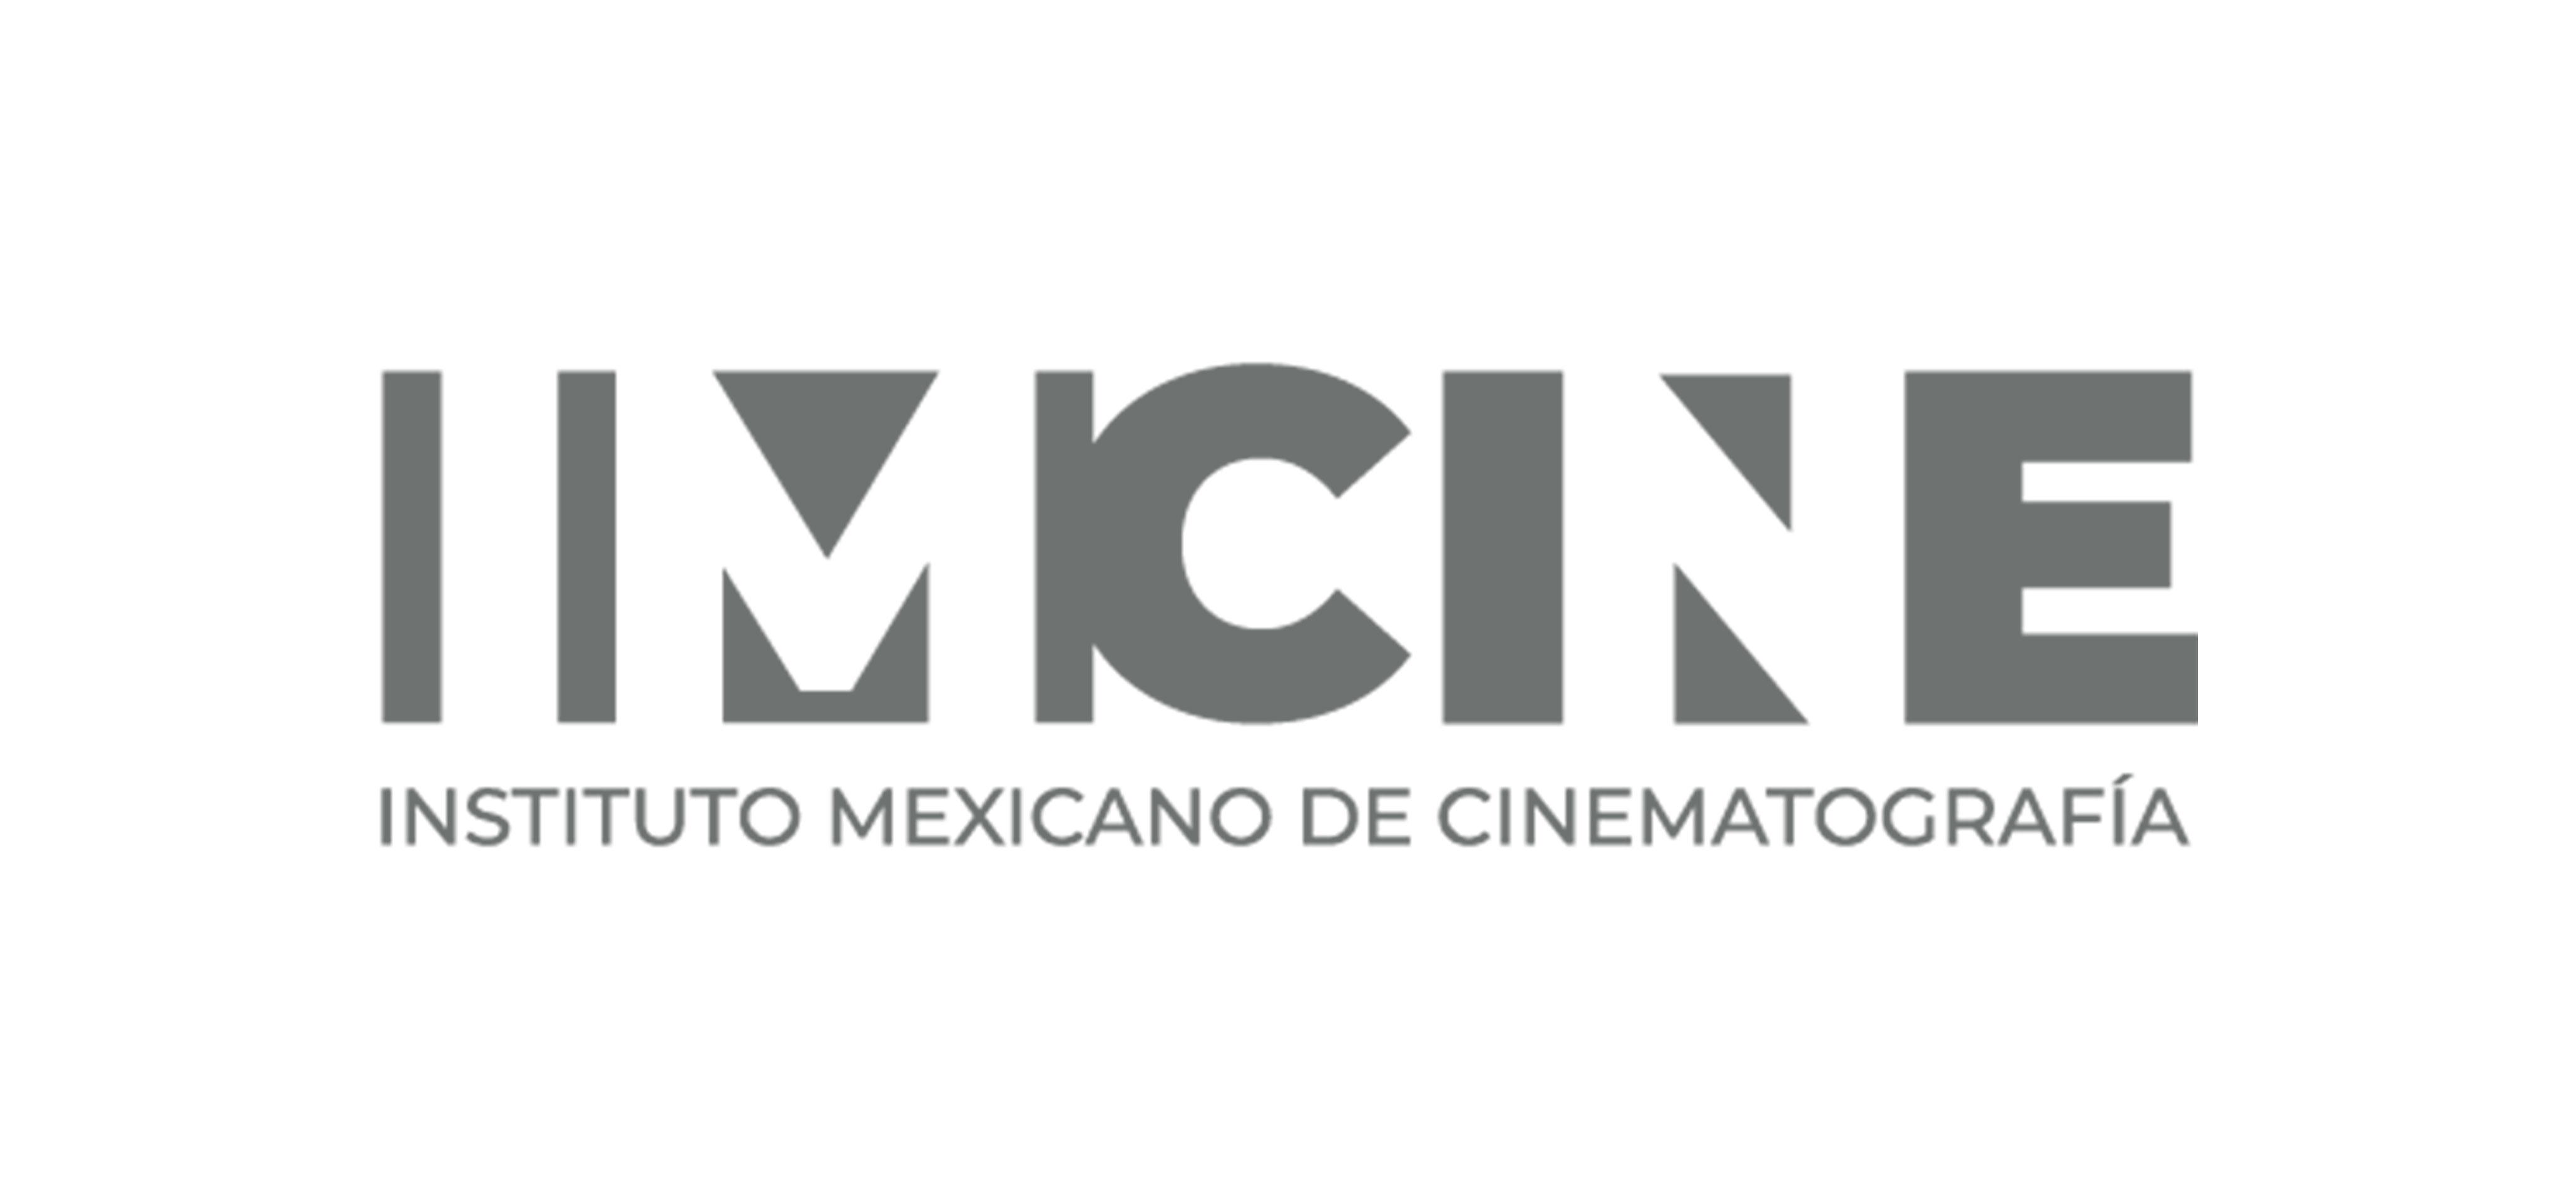 Logo del Instituto Mexicano de Cinematografía